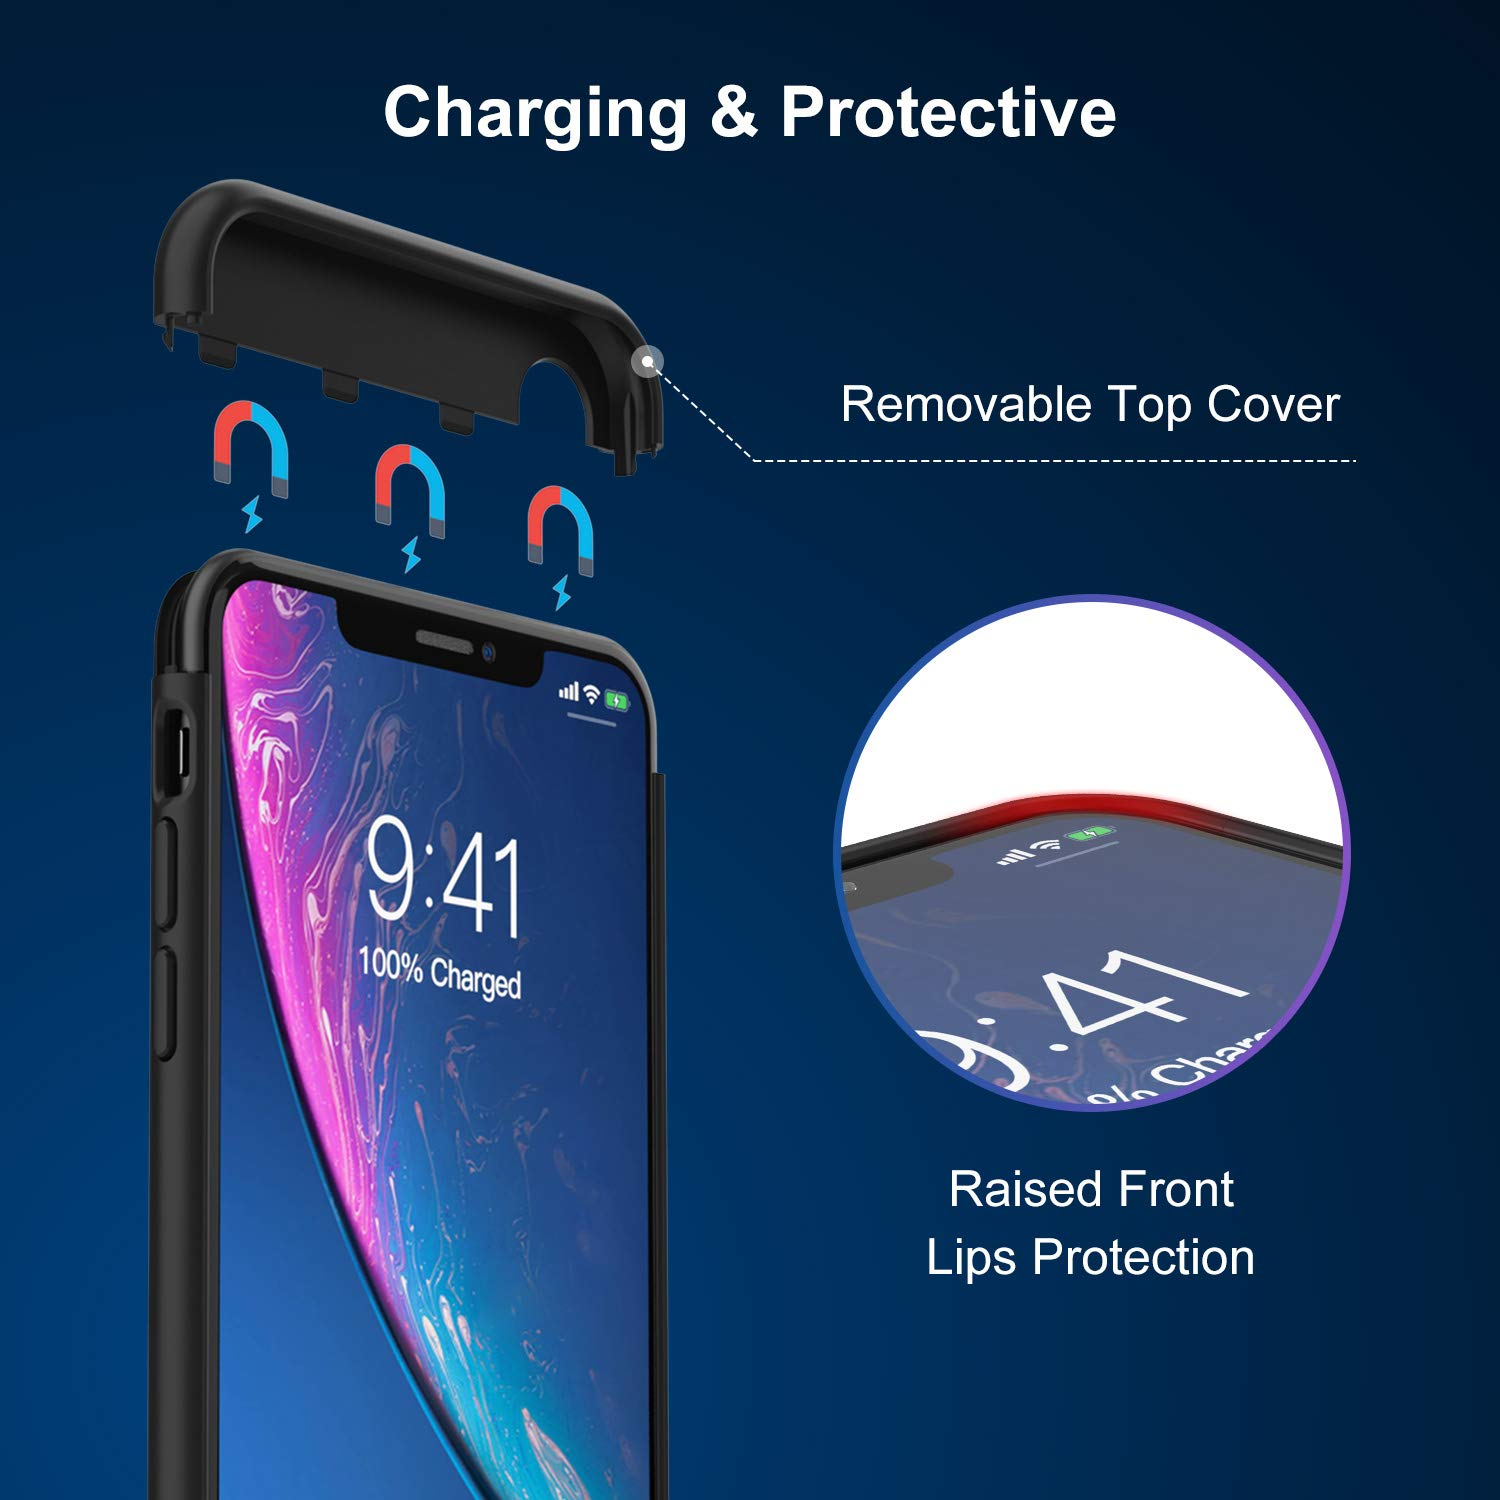 Battery Case for iPhone XR, 5000mAh Charging Case Protective Charger Case for iPhone XR (Black) by Lonlif (Image #4)